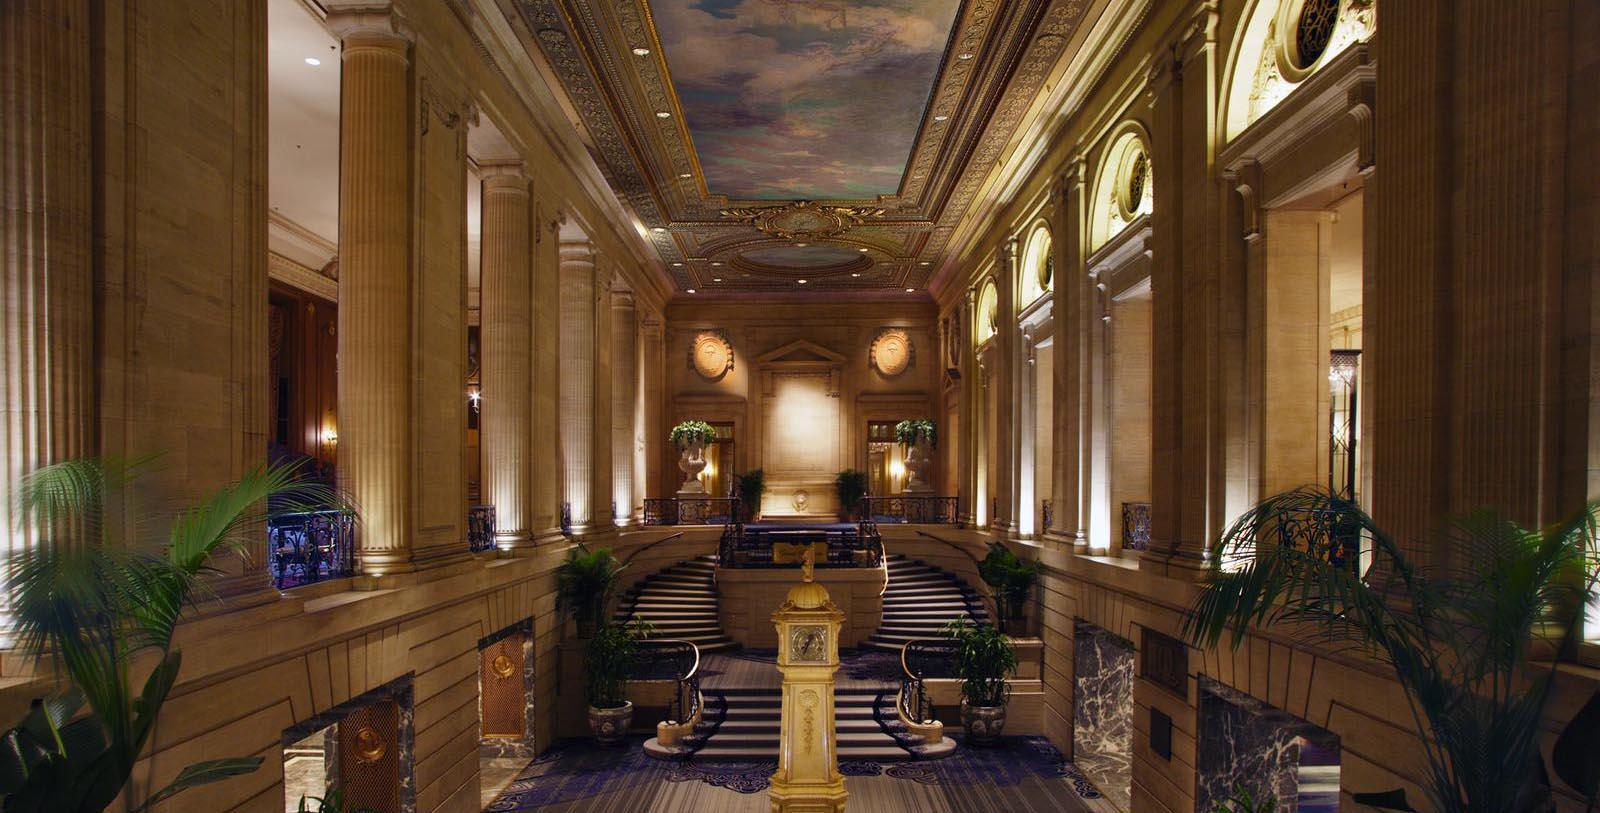 Image of hotel lobby Hilton Chicago, 1927, Member of Historic Hotels of America, in Chicago, Illinois, Discover